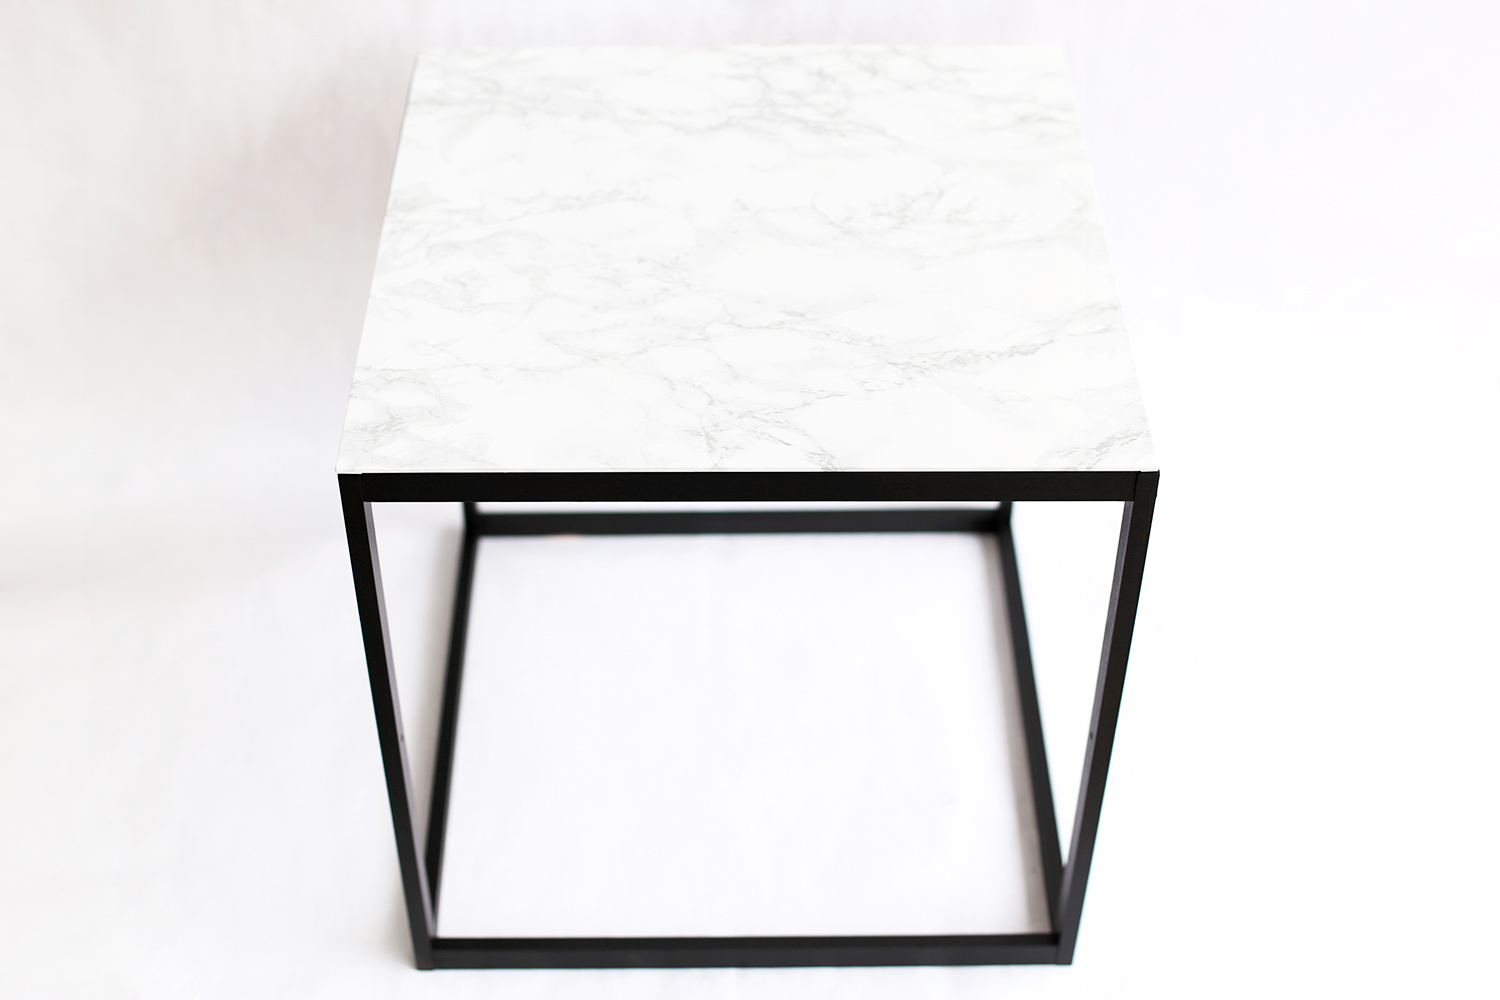 DIY marble table step 4